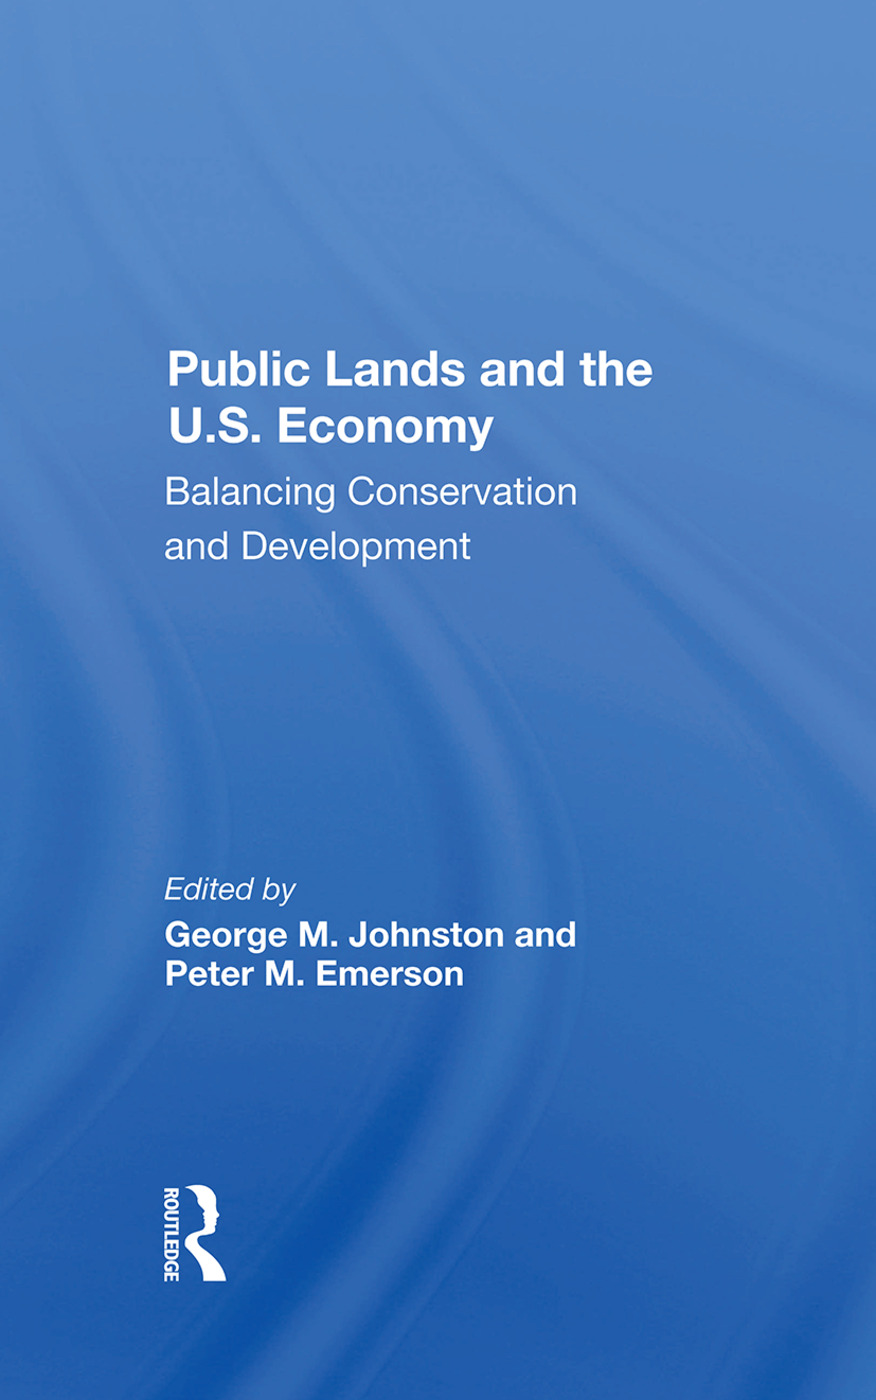 Public Lands And The U.s. Economy: Balancing Conservation And Development, 1st Edition (Hardback) book cover